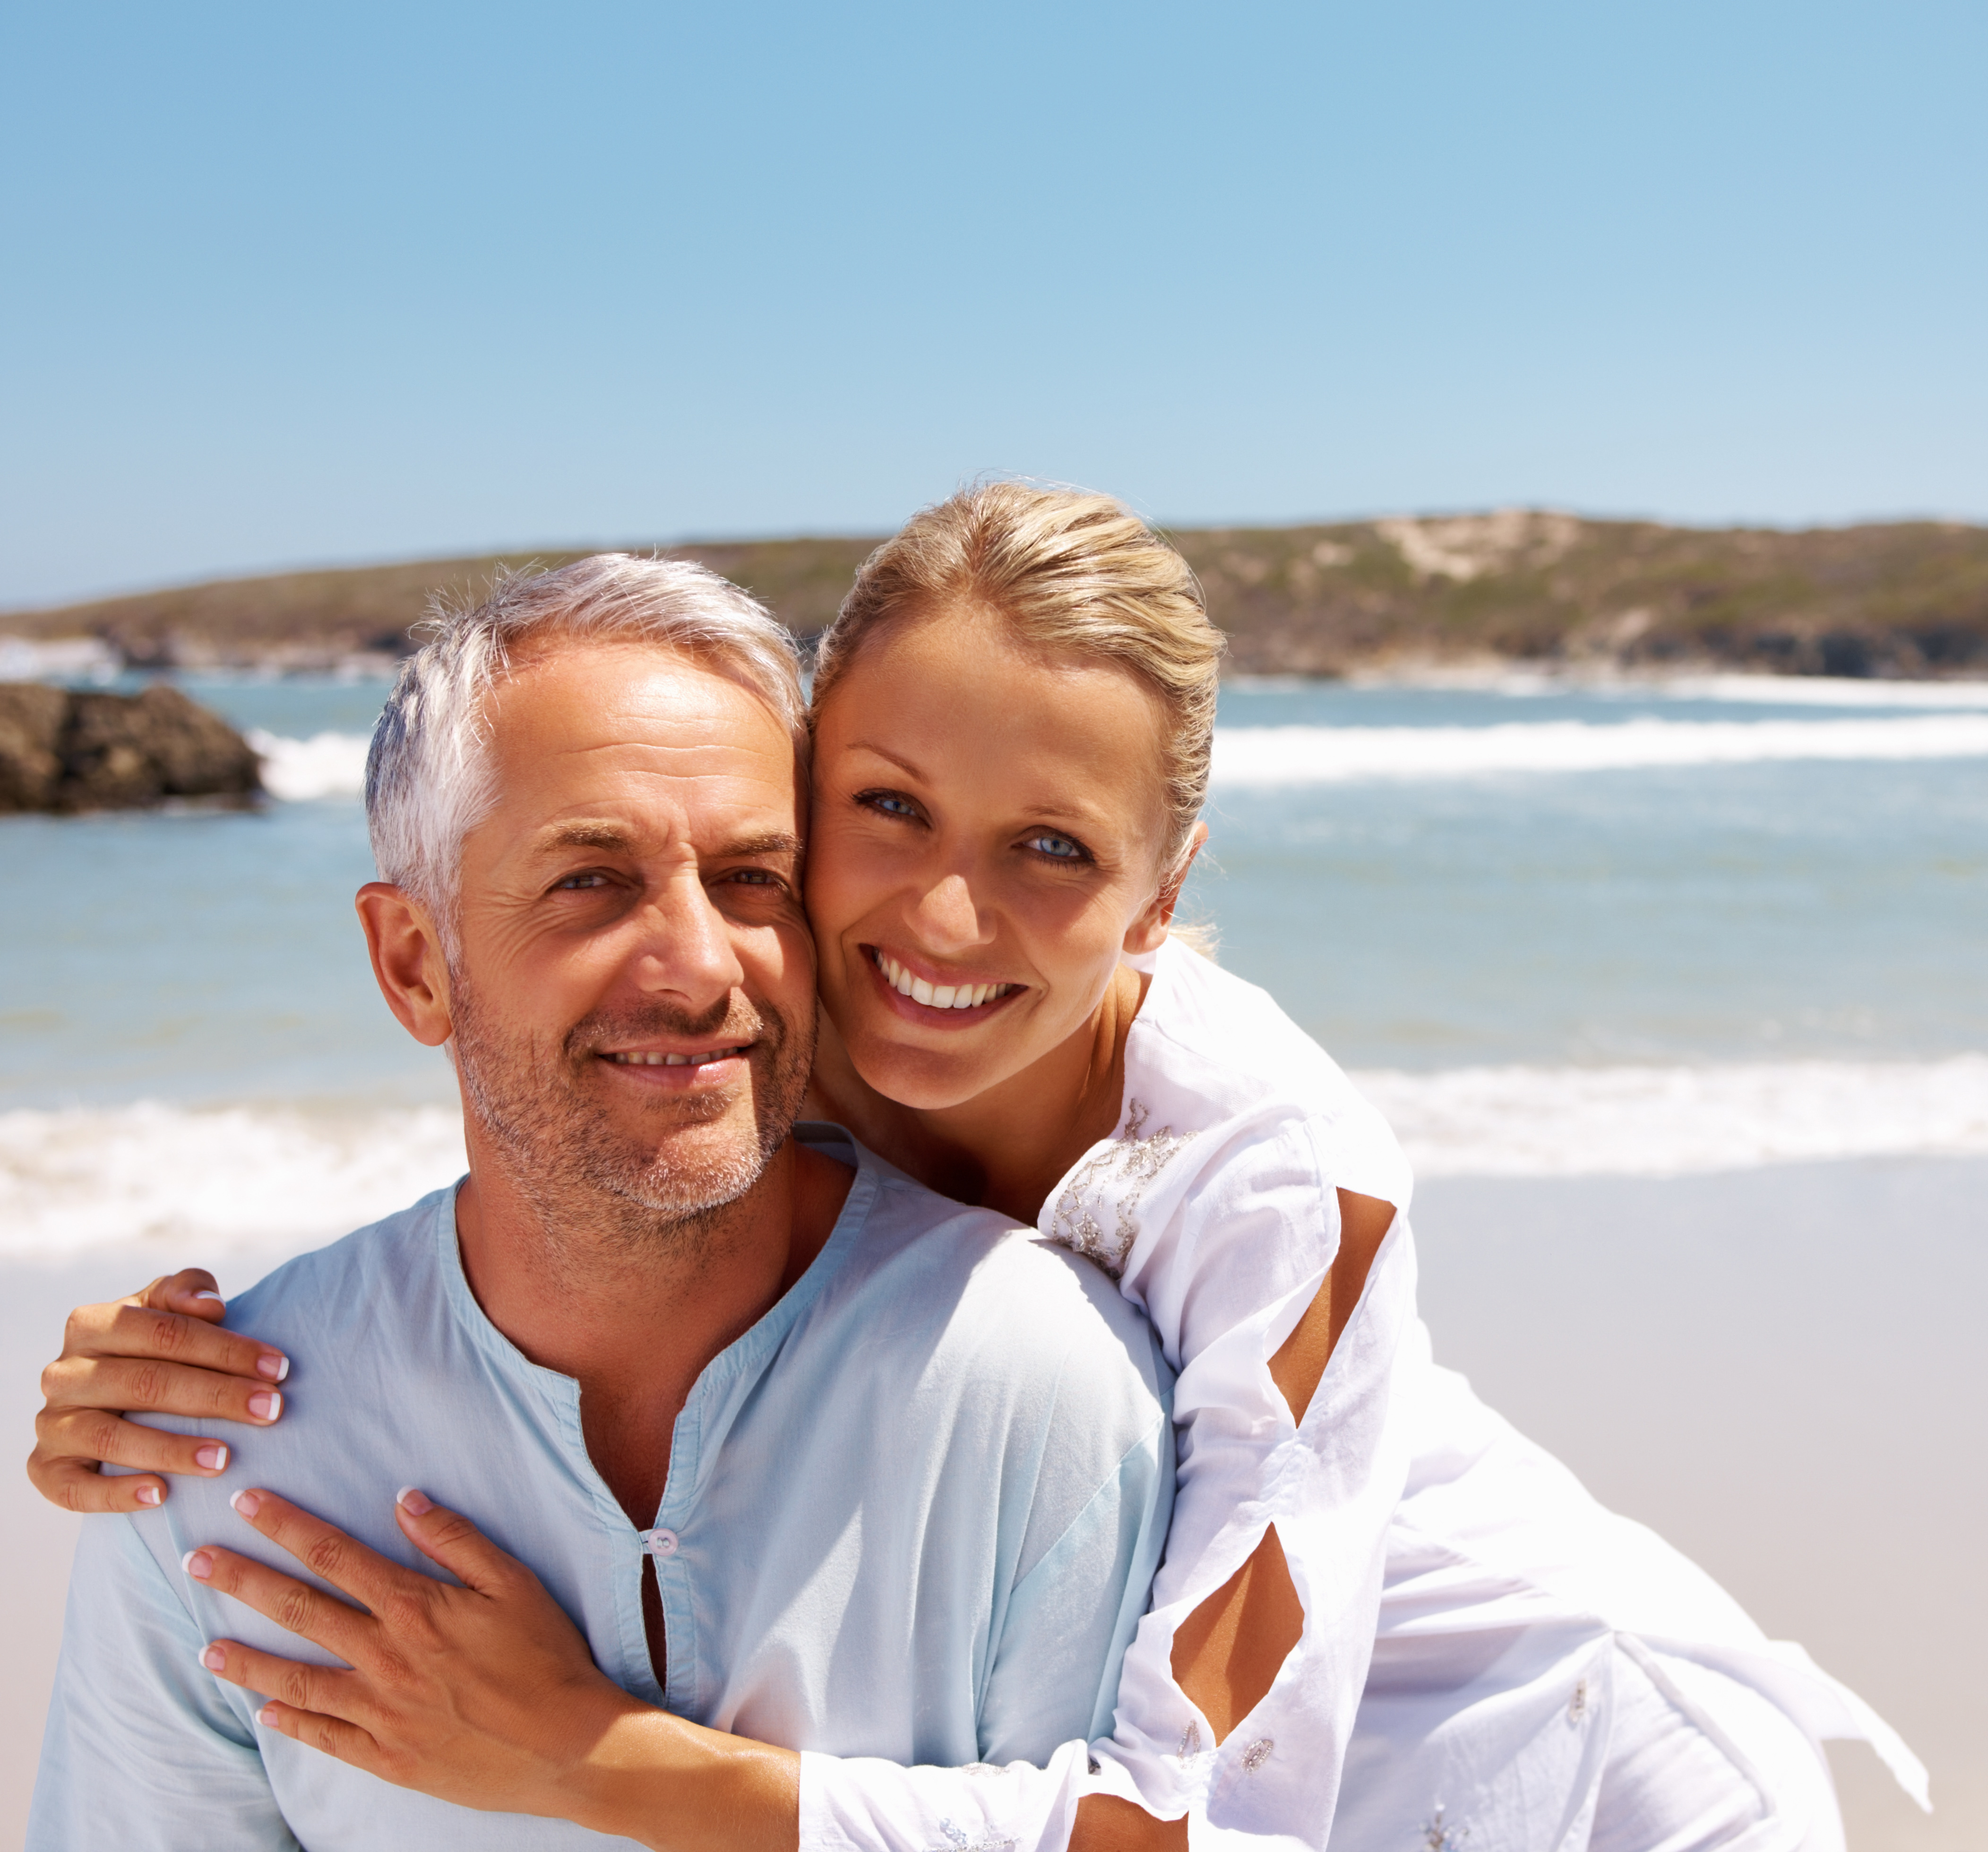 singles dating 55 and older